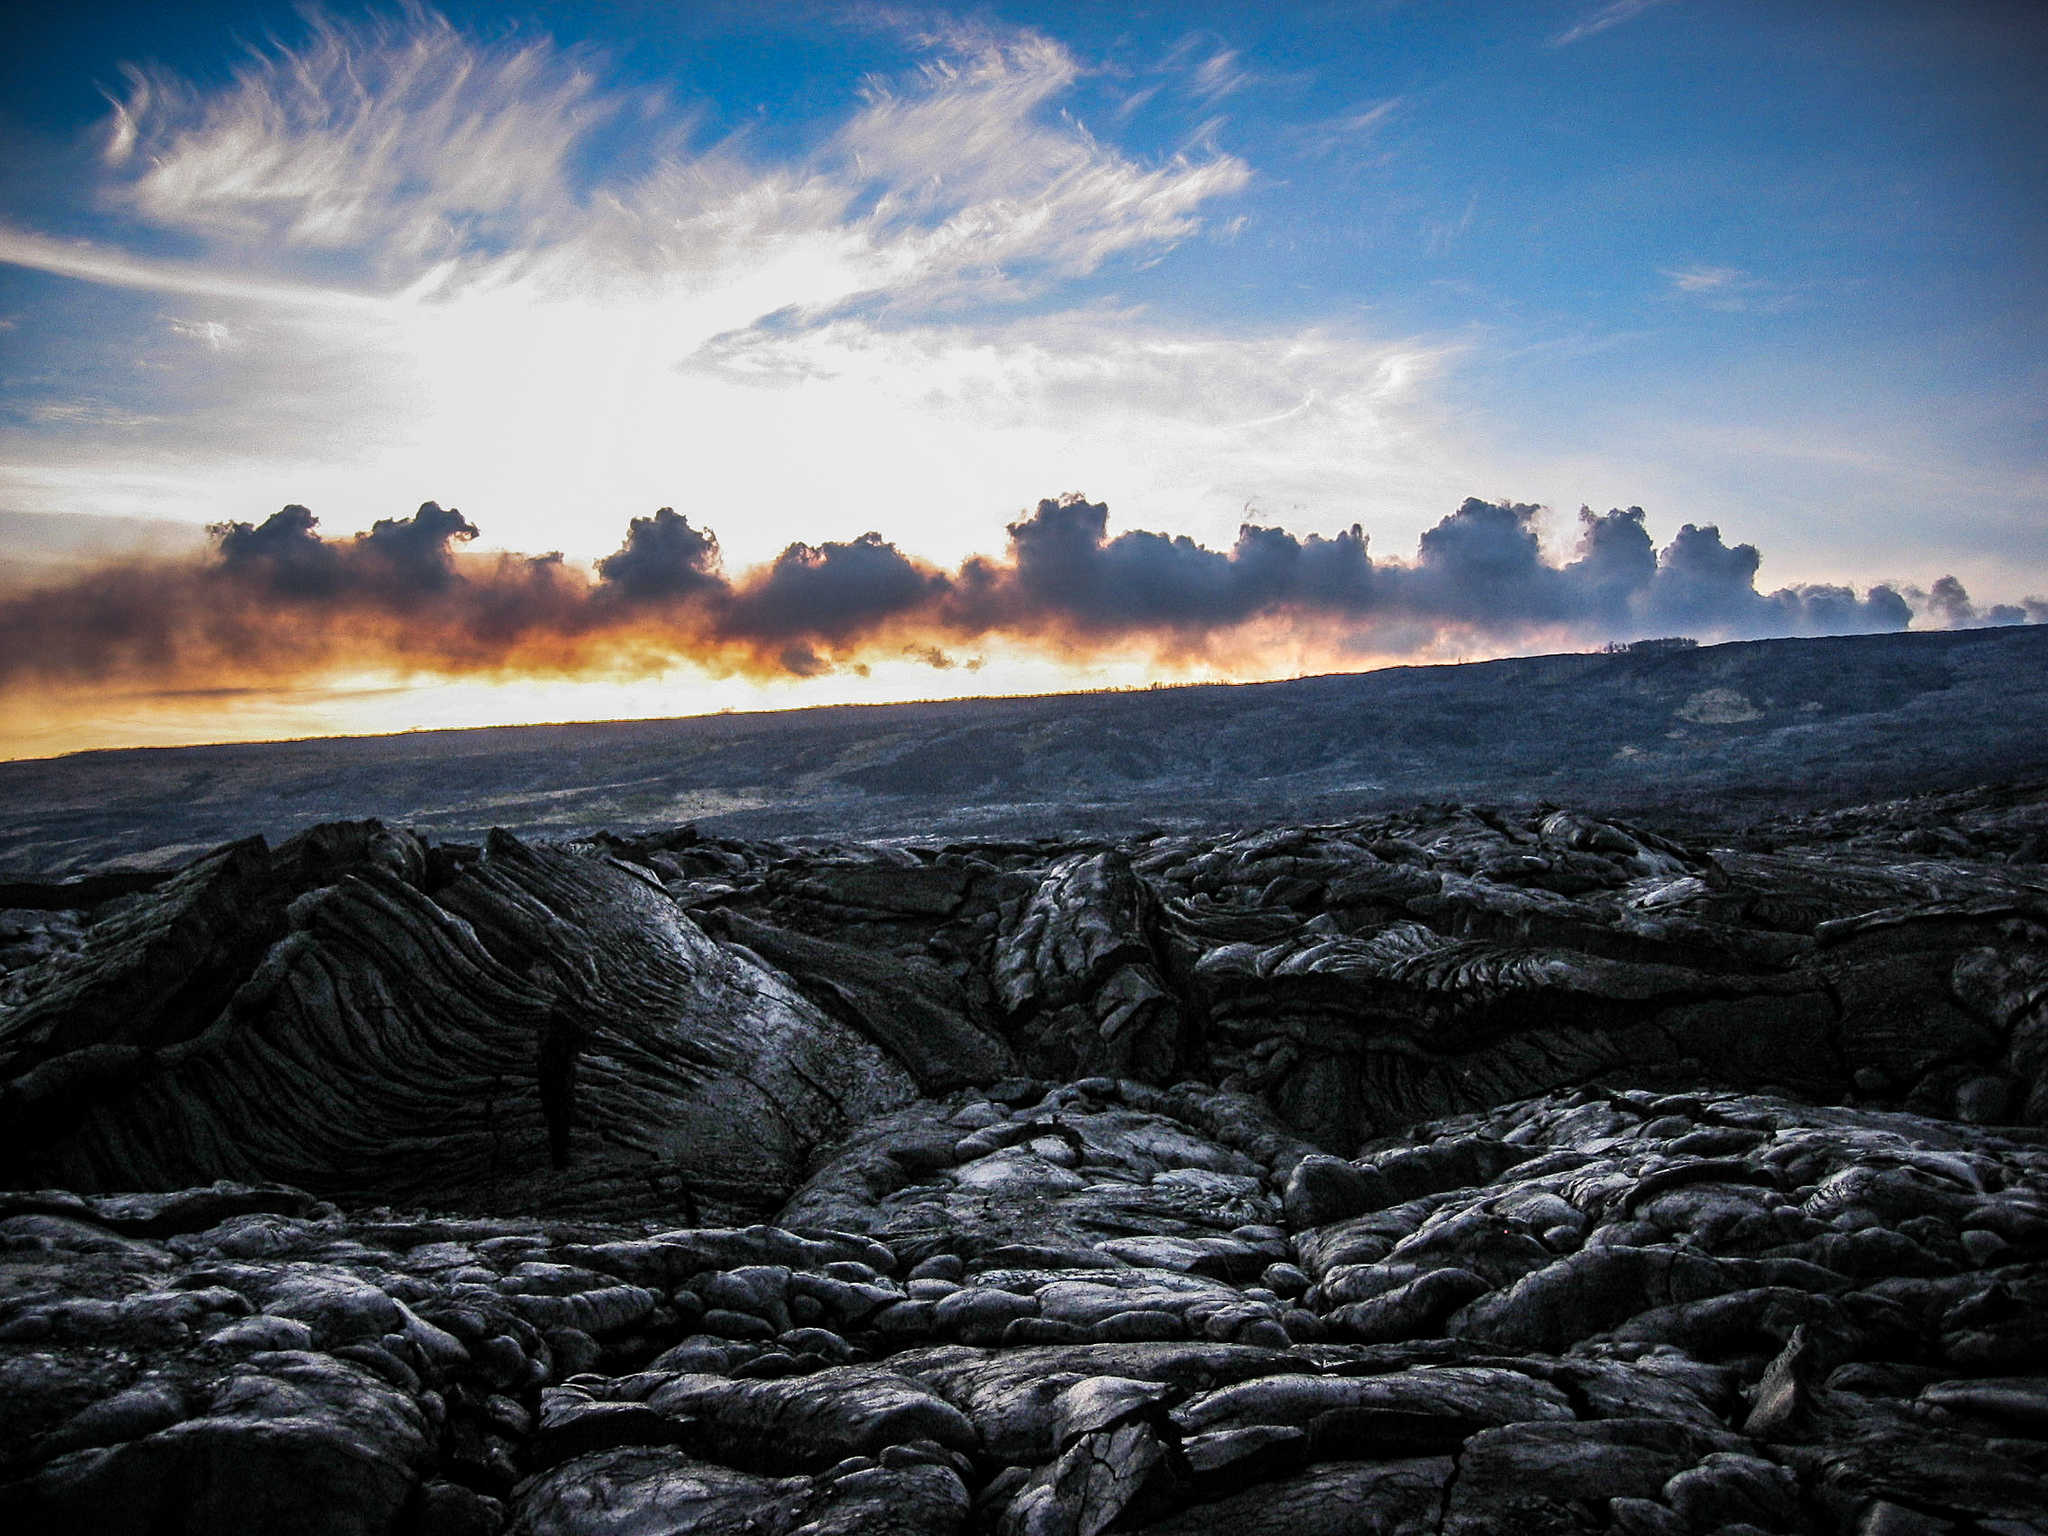 """2005-05-22 - on the lava, Hawai`i Volcanoes National Park, 06"" by Alfred Elkerbout is licensed under CC 2.0."